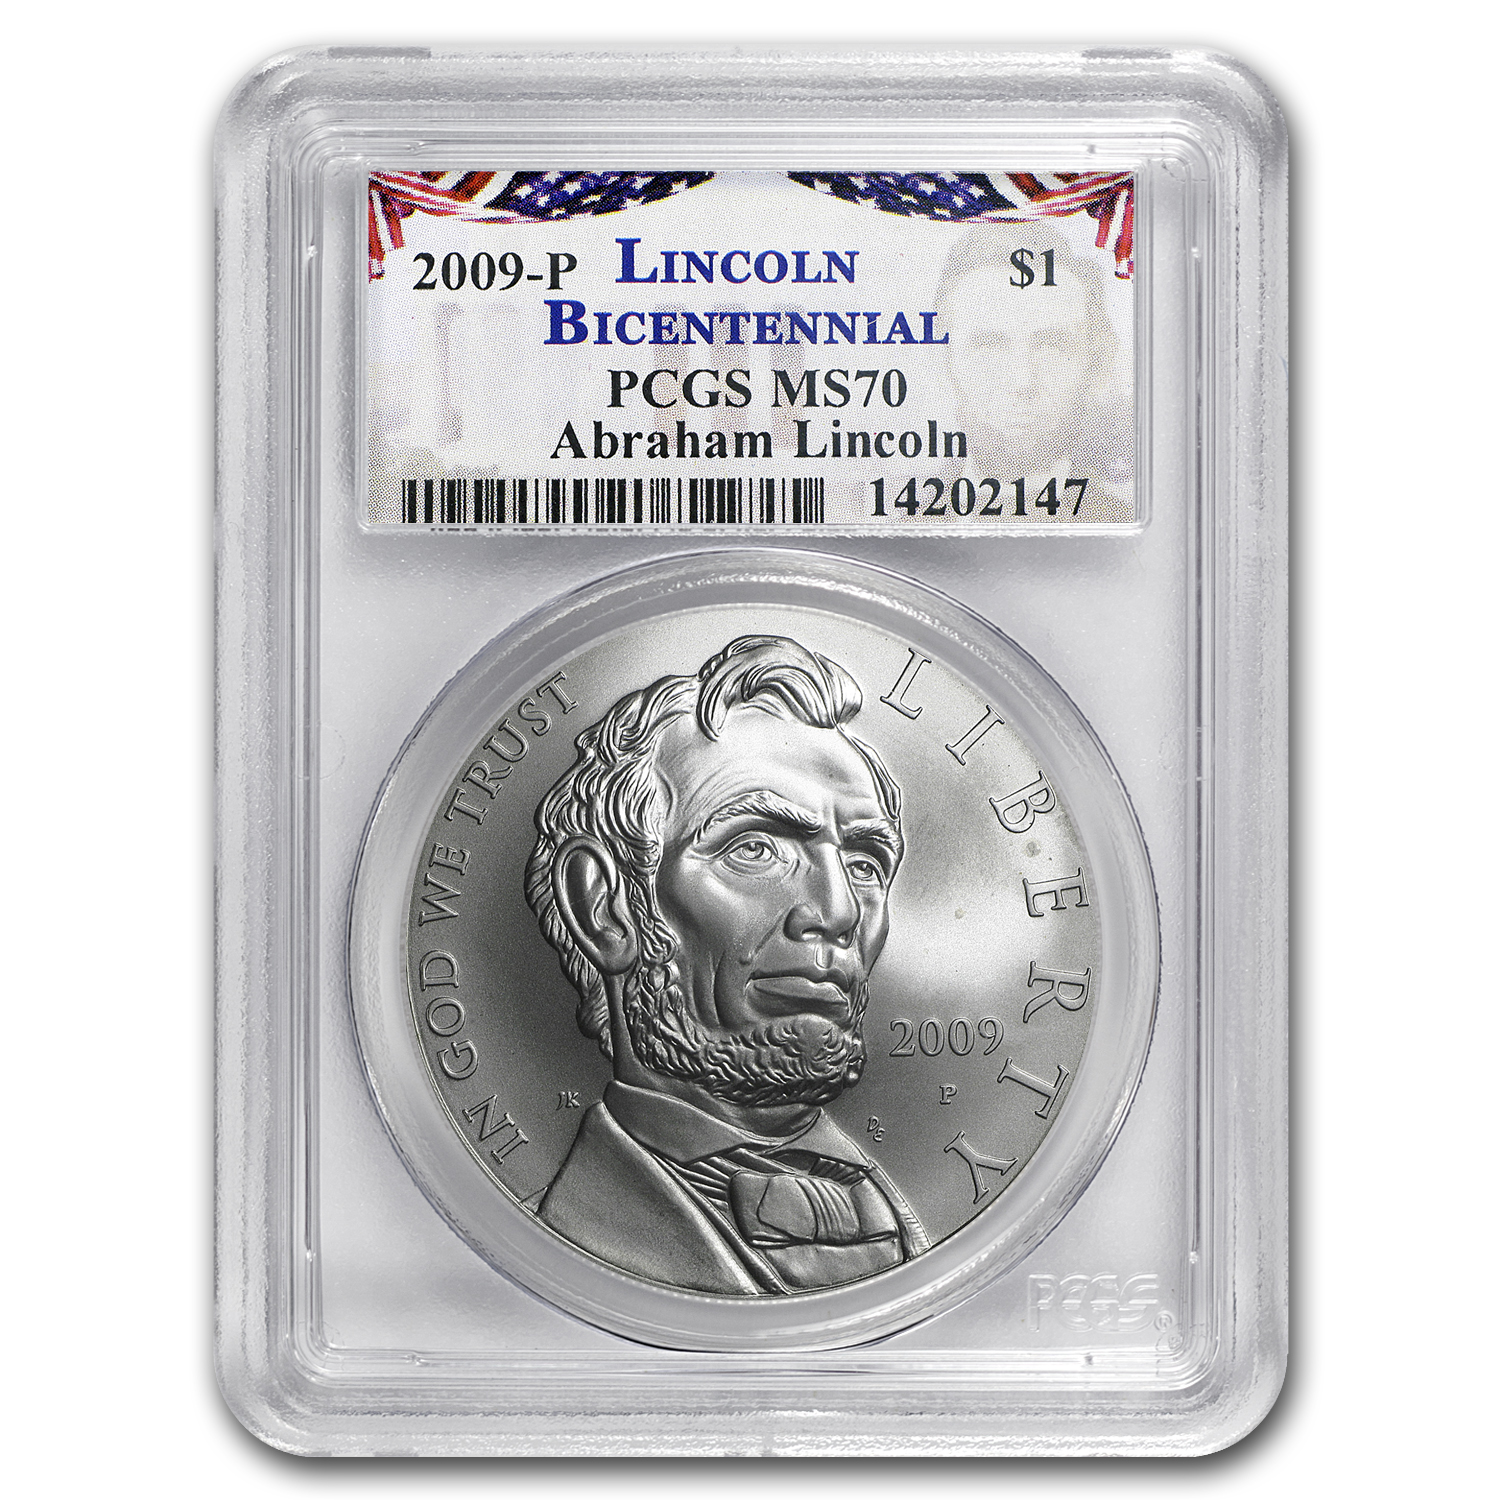 2009-P Abraham Lincoln $1 Silver Commemorative MS-70 PCGS